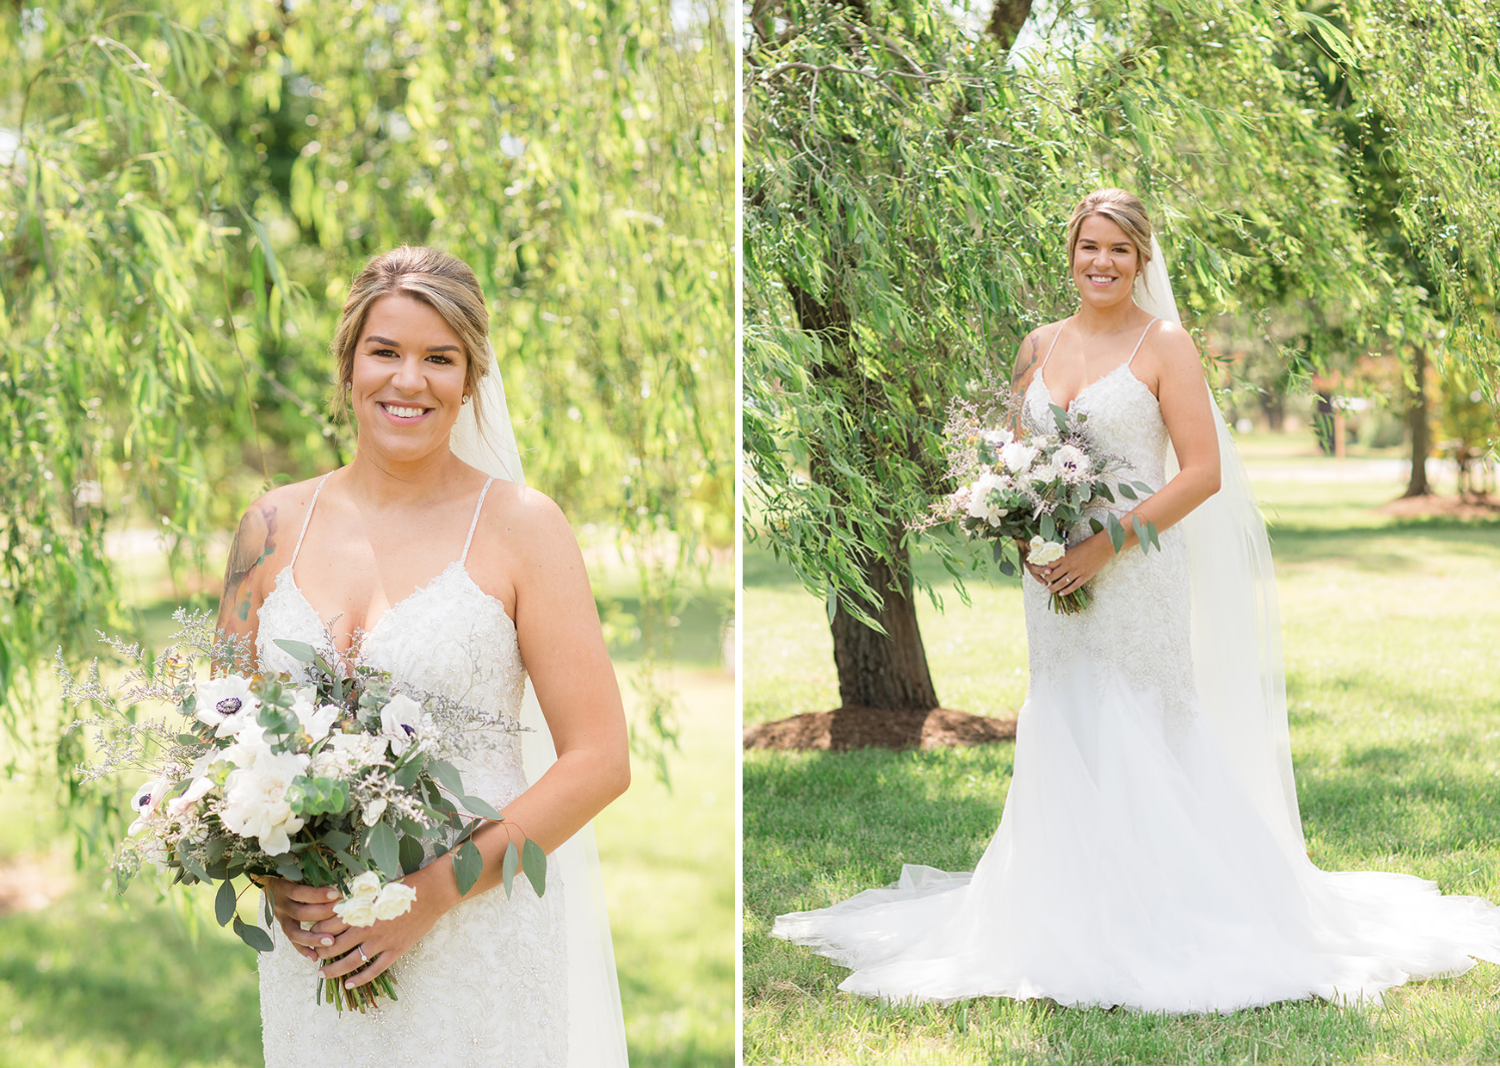 outdoor bridal portraits with the bride in her wedding dress and bouquet